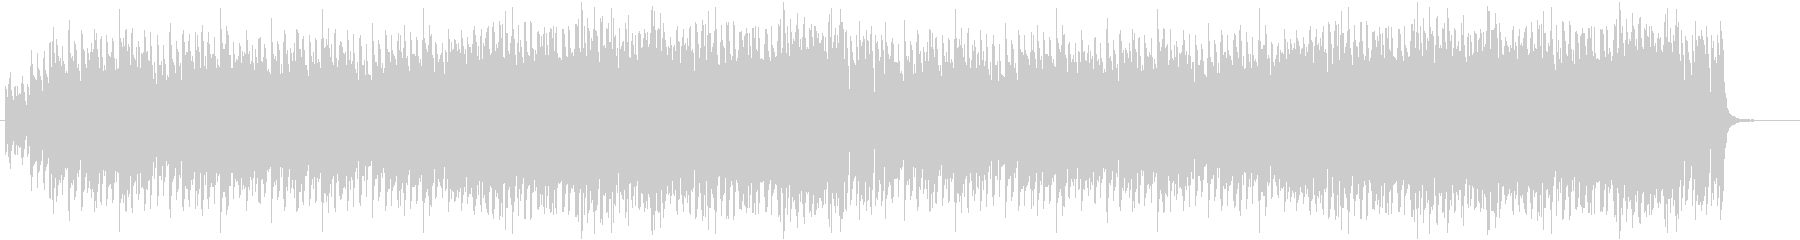 Company / school introduction BGM that makes you feel hope's unreproduced waveform